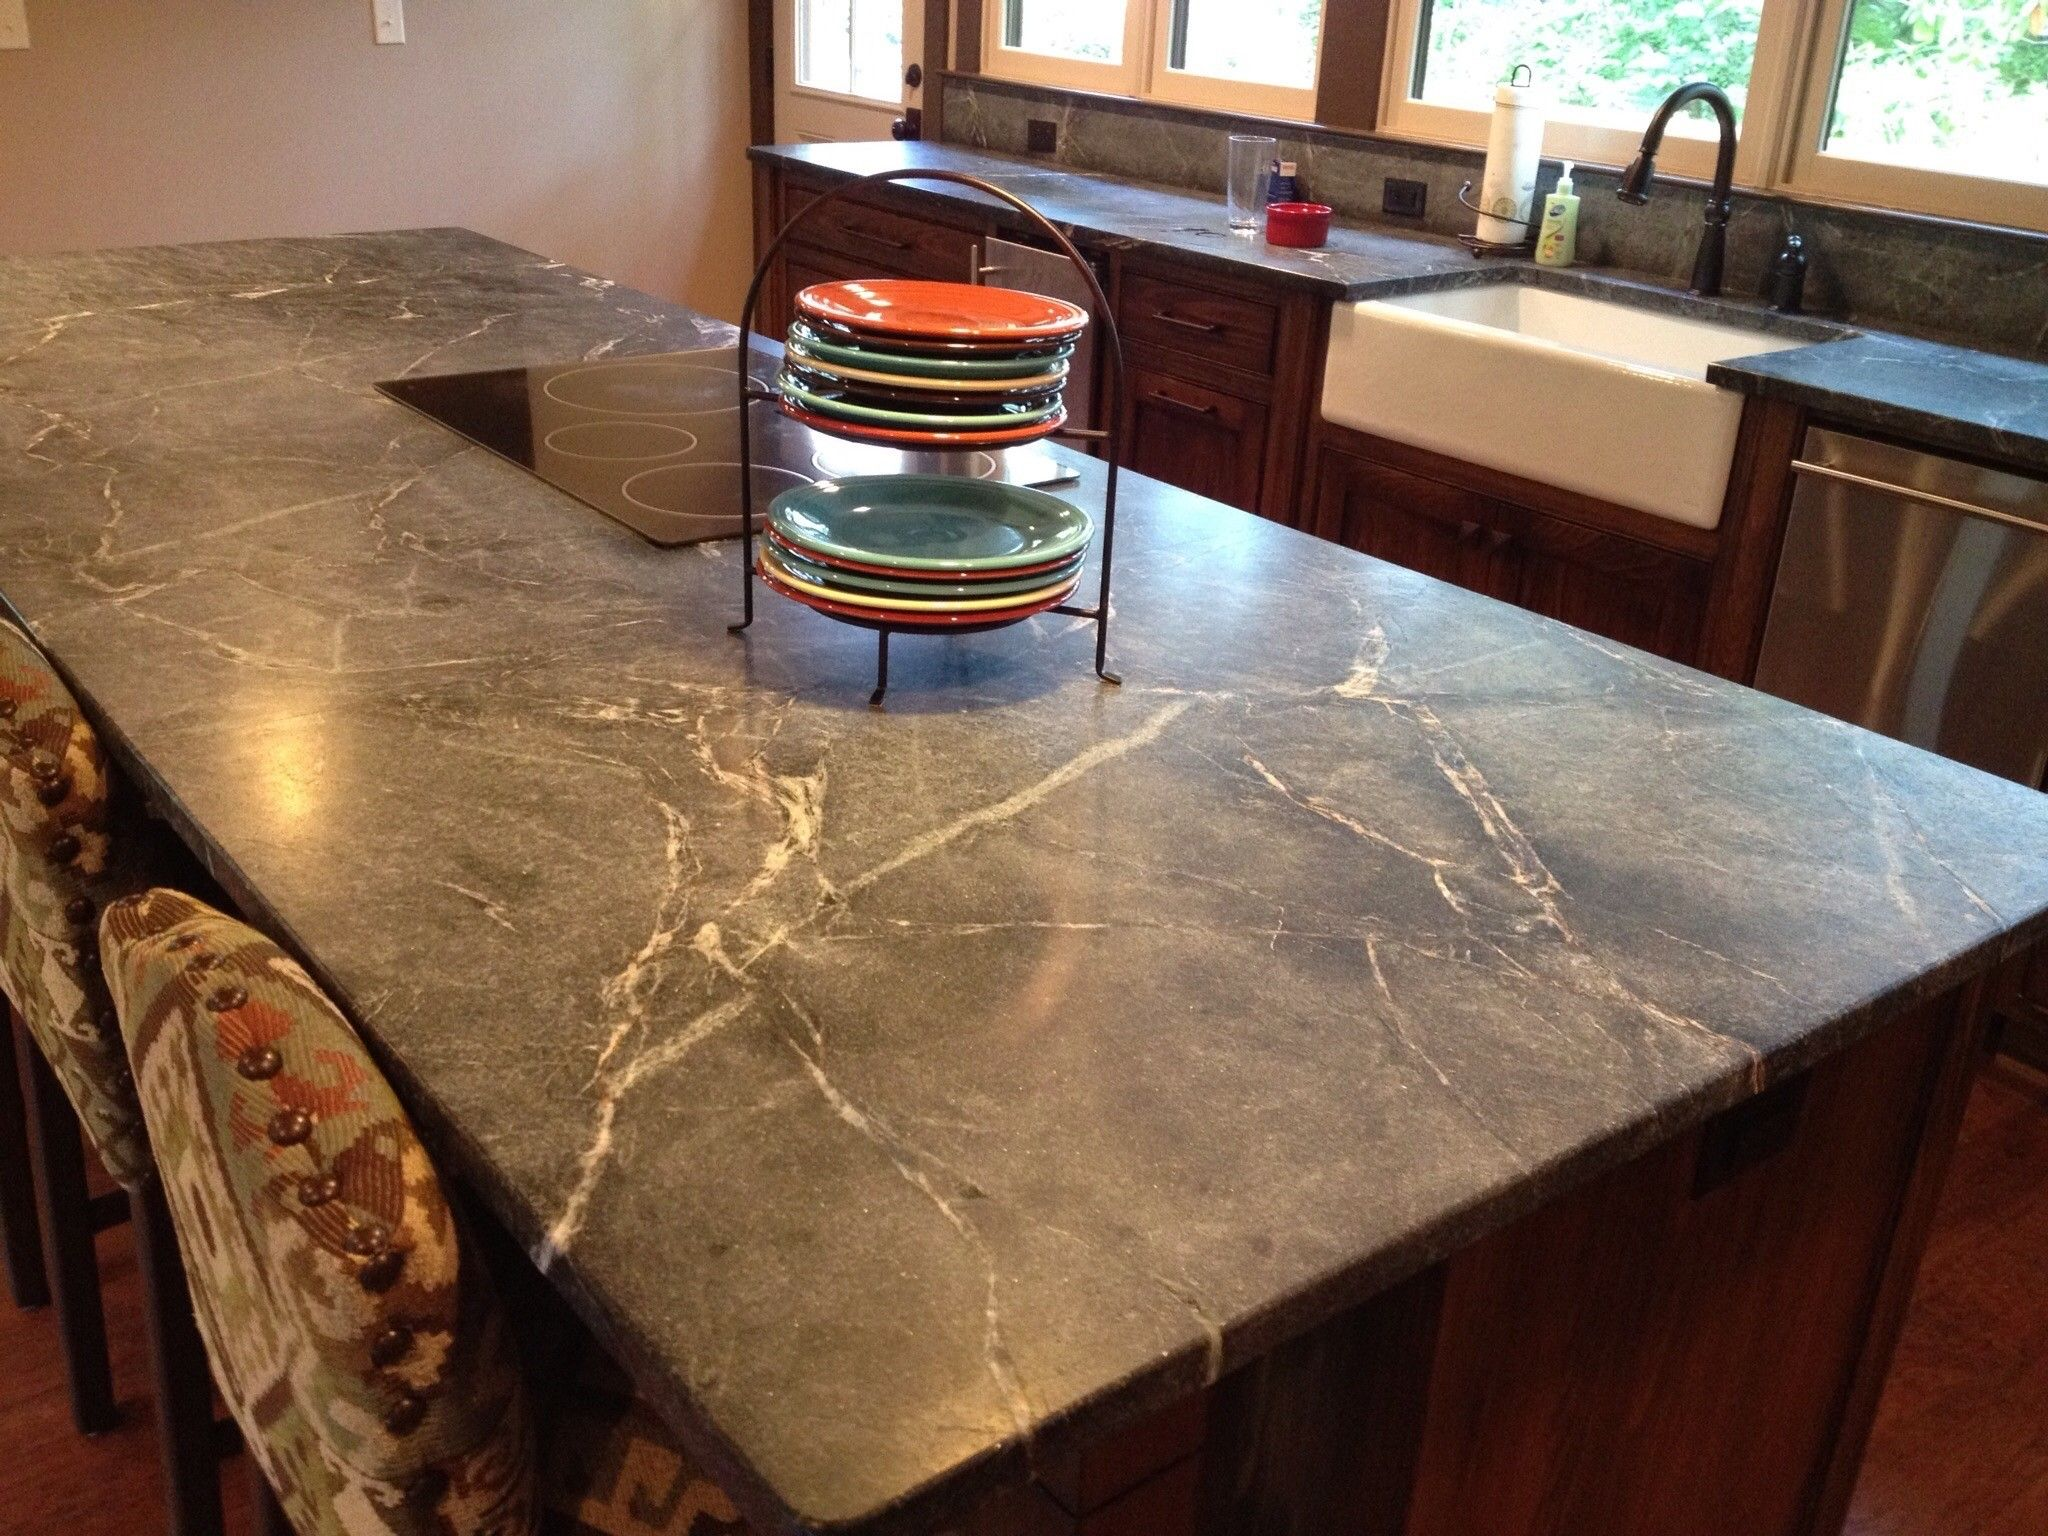 Remodel Kitchen Design With Soapstone Countertops Cost Plus Modern Furniture Interior How Much Is Imagefriend Com Your Friend